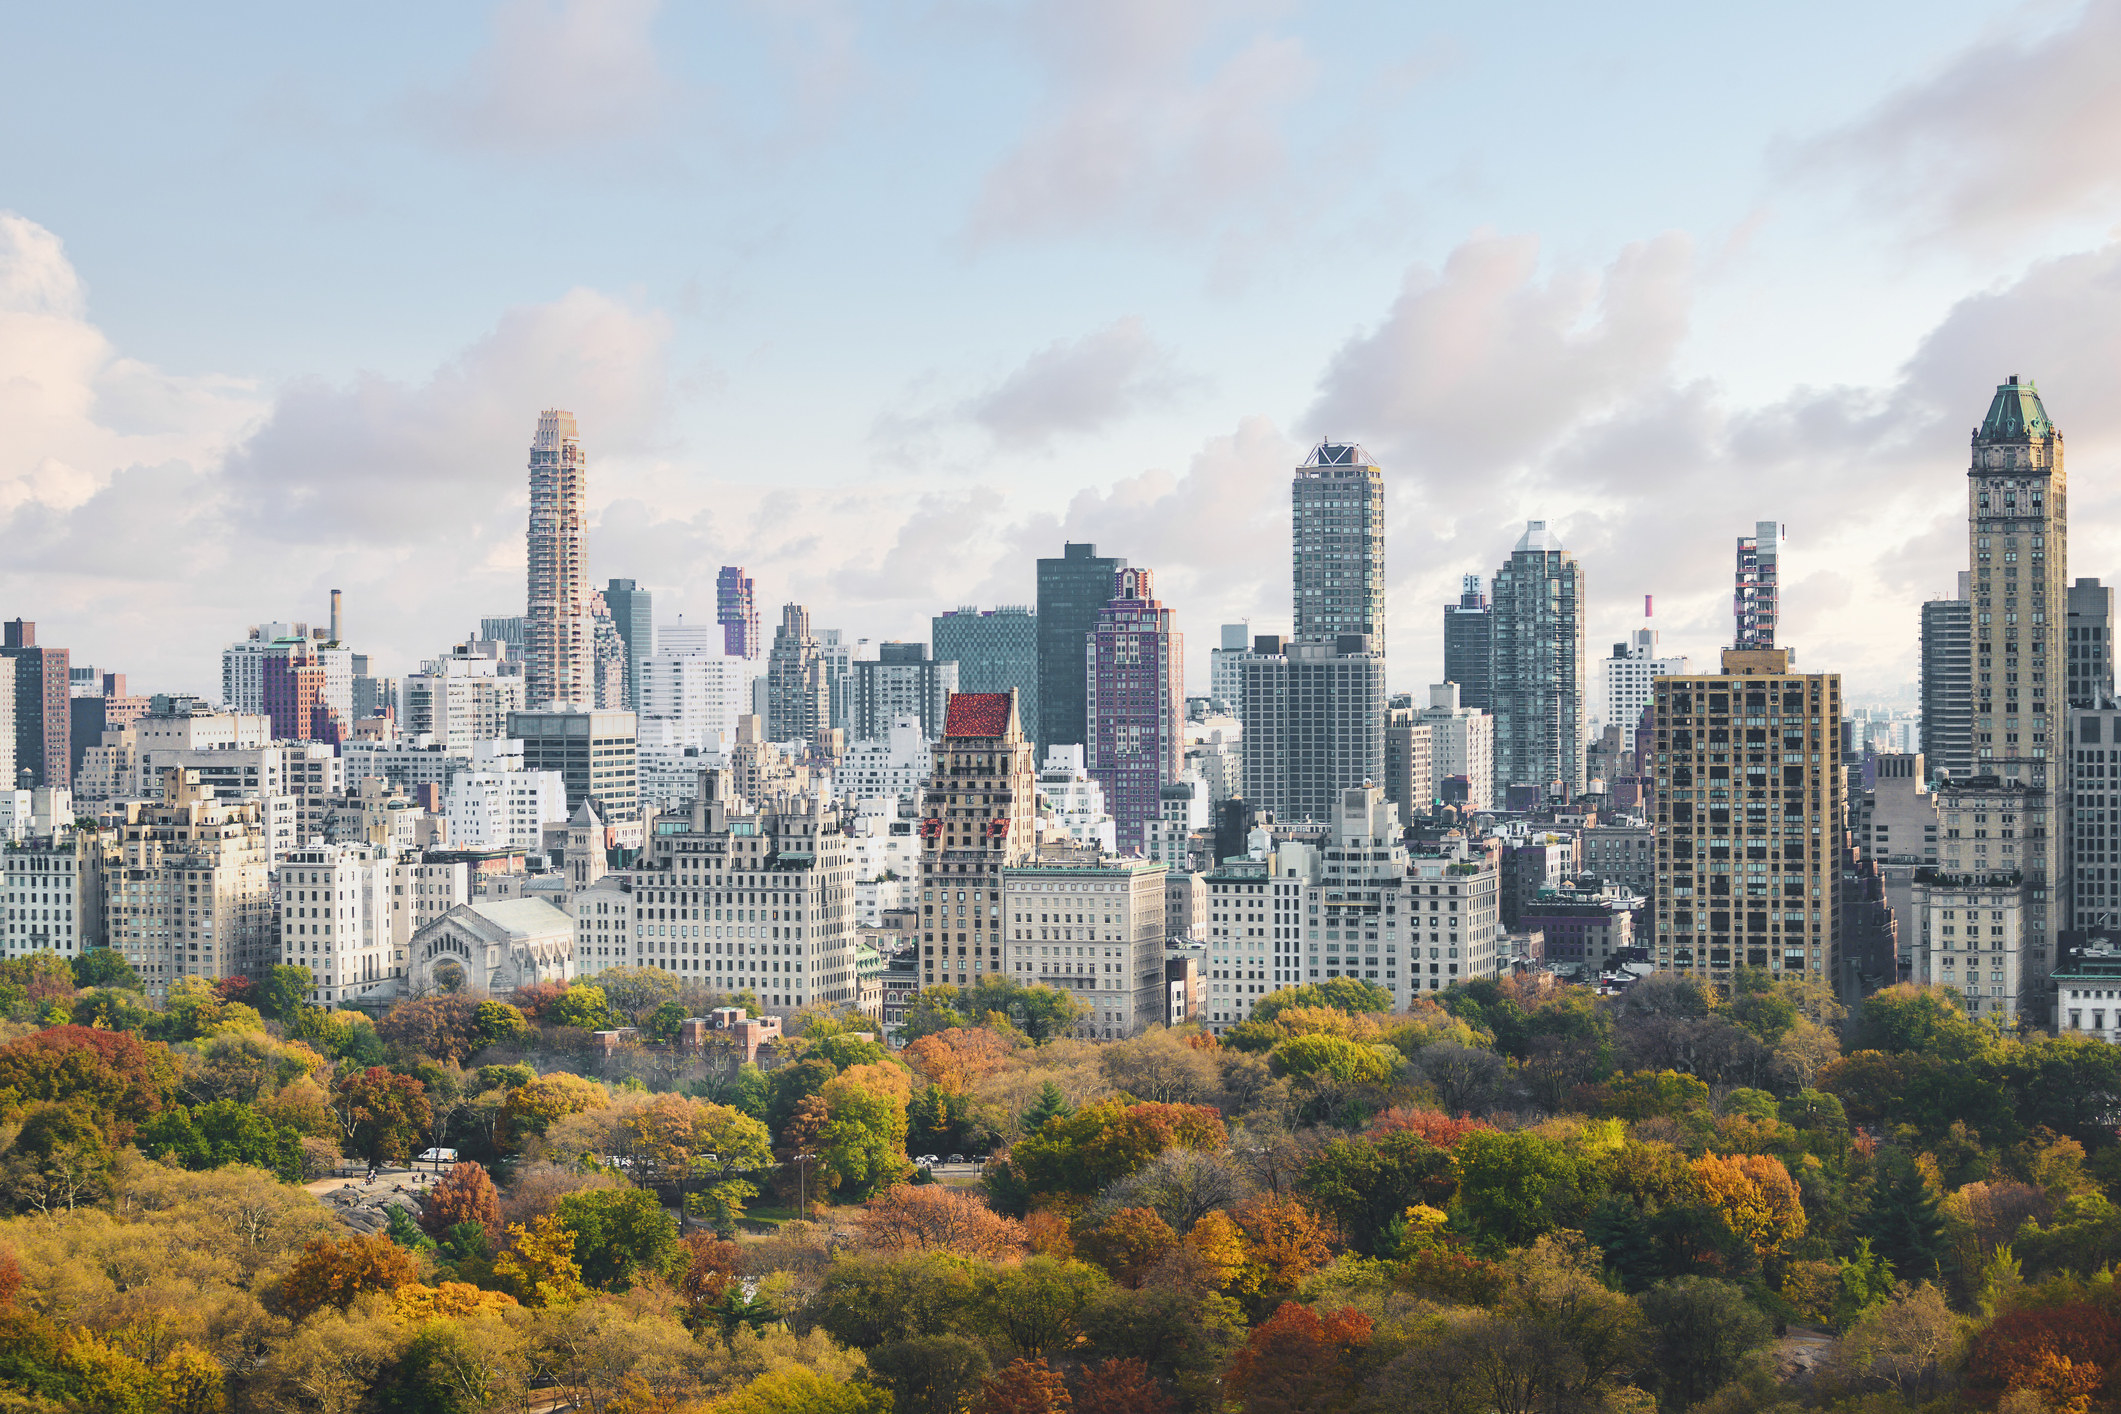 A top view of the autumnal trees of Central Park with the NYC skyline behind